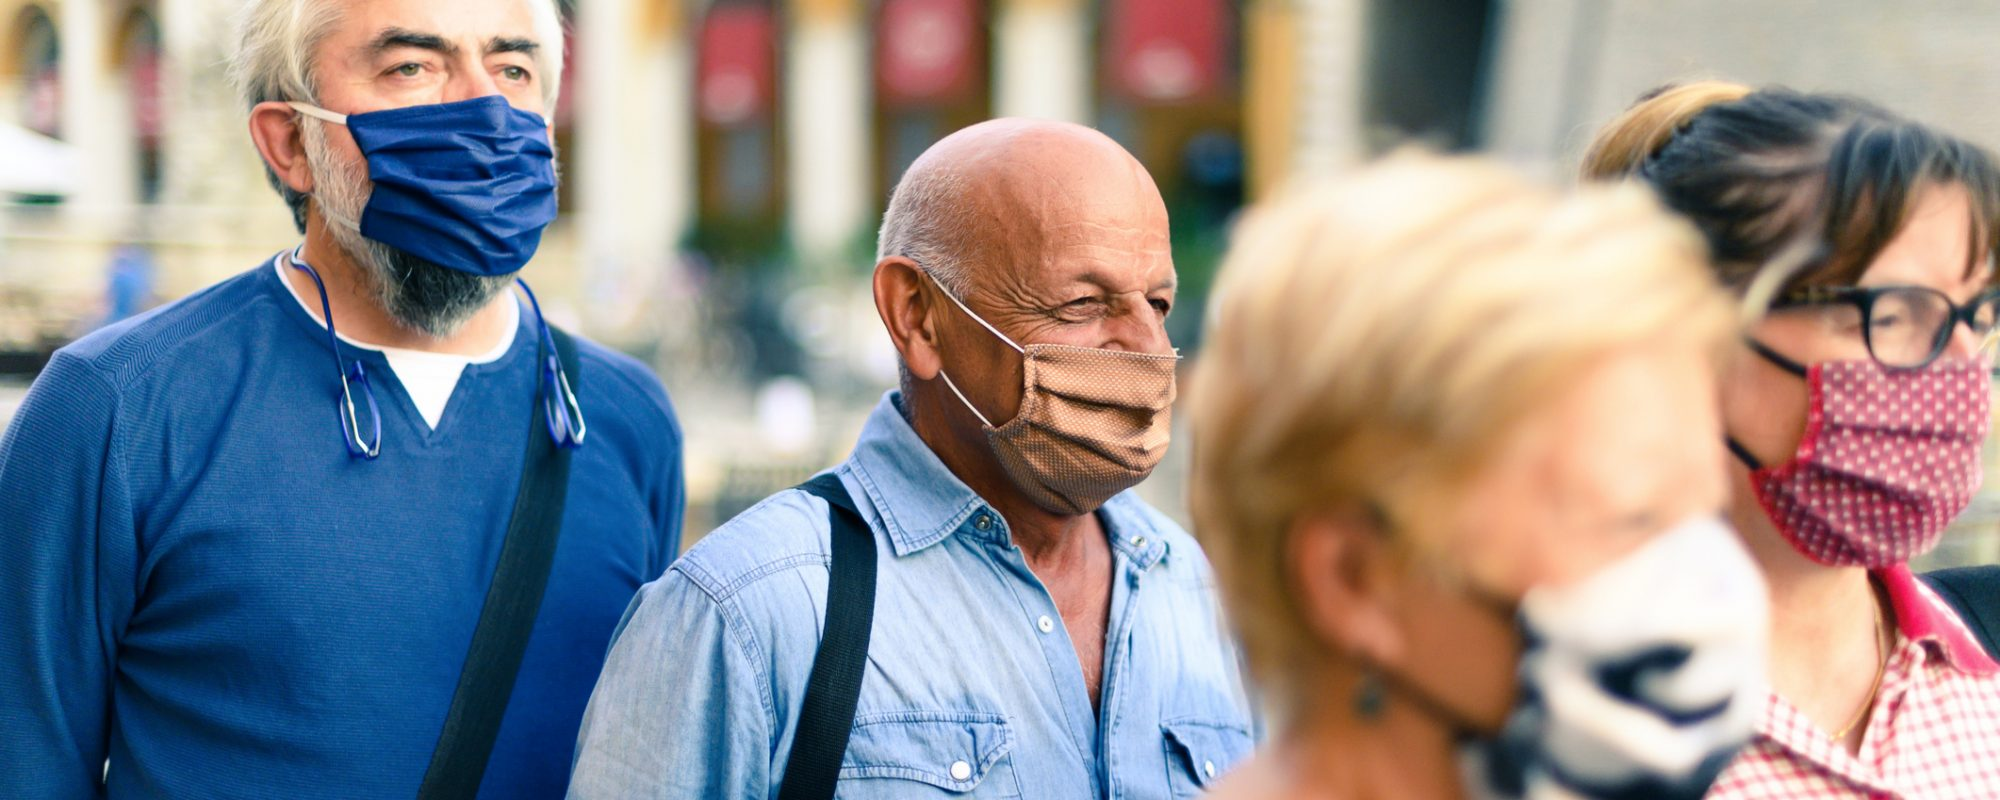 Crowd of adult people walking on city street with face mask on - New normal lifestyle concept - Focus on bald man with brown protective mask